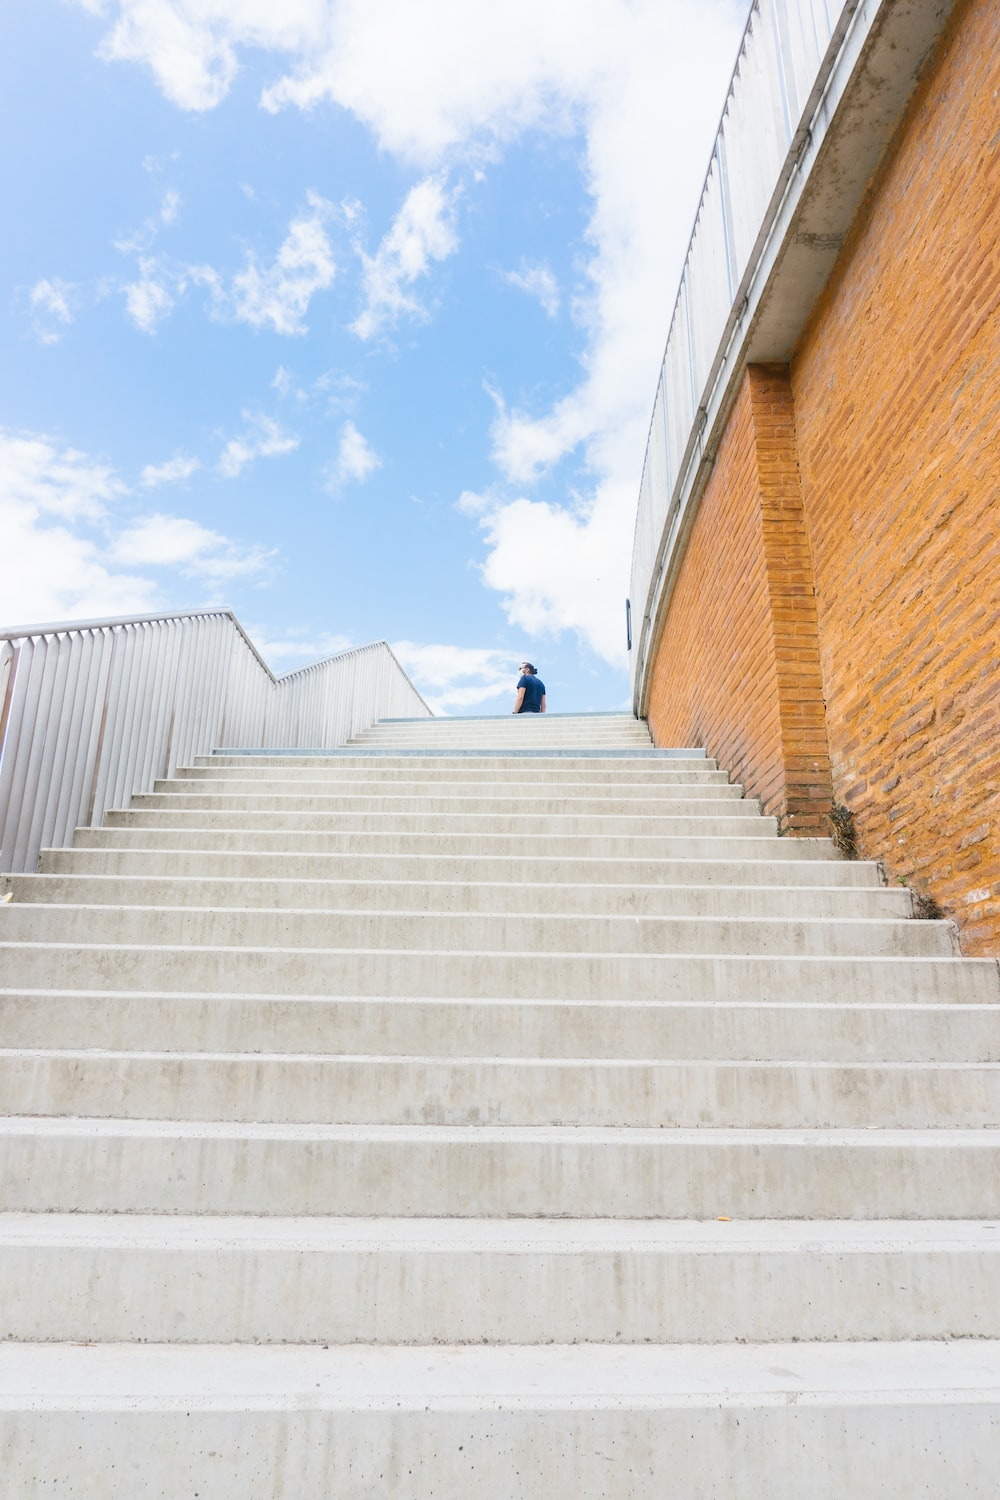 person in black jacket walking on white concrete stairs during daytime